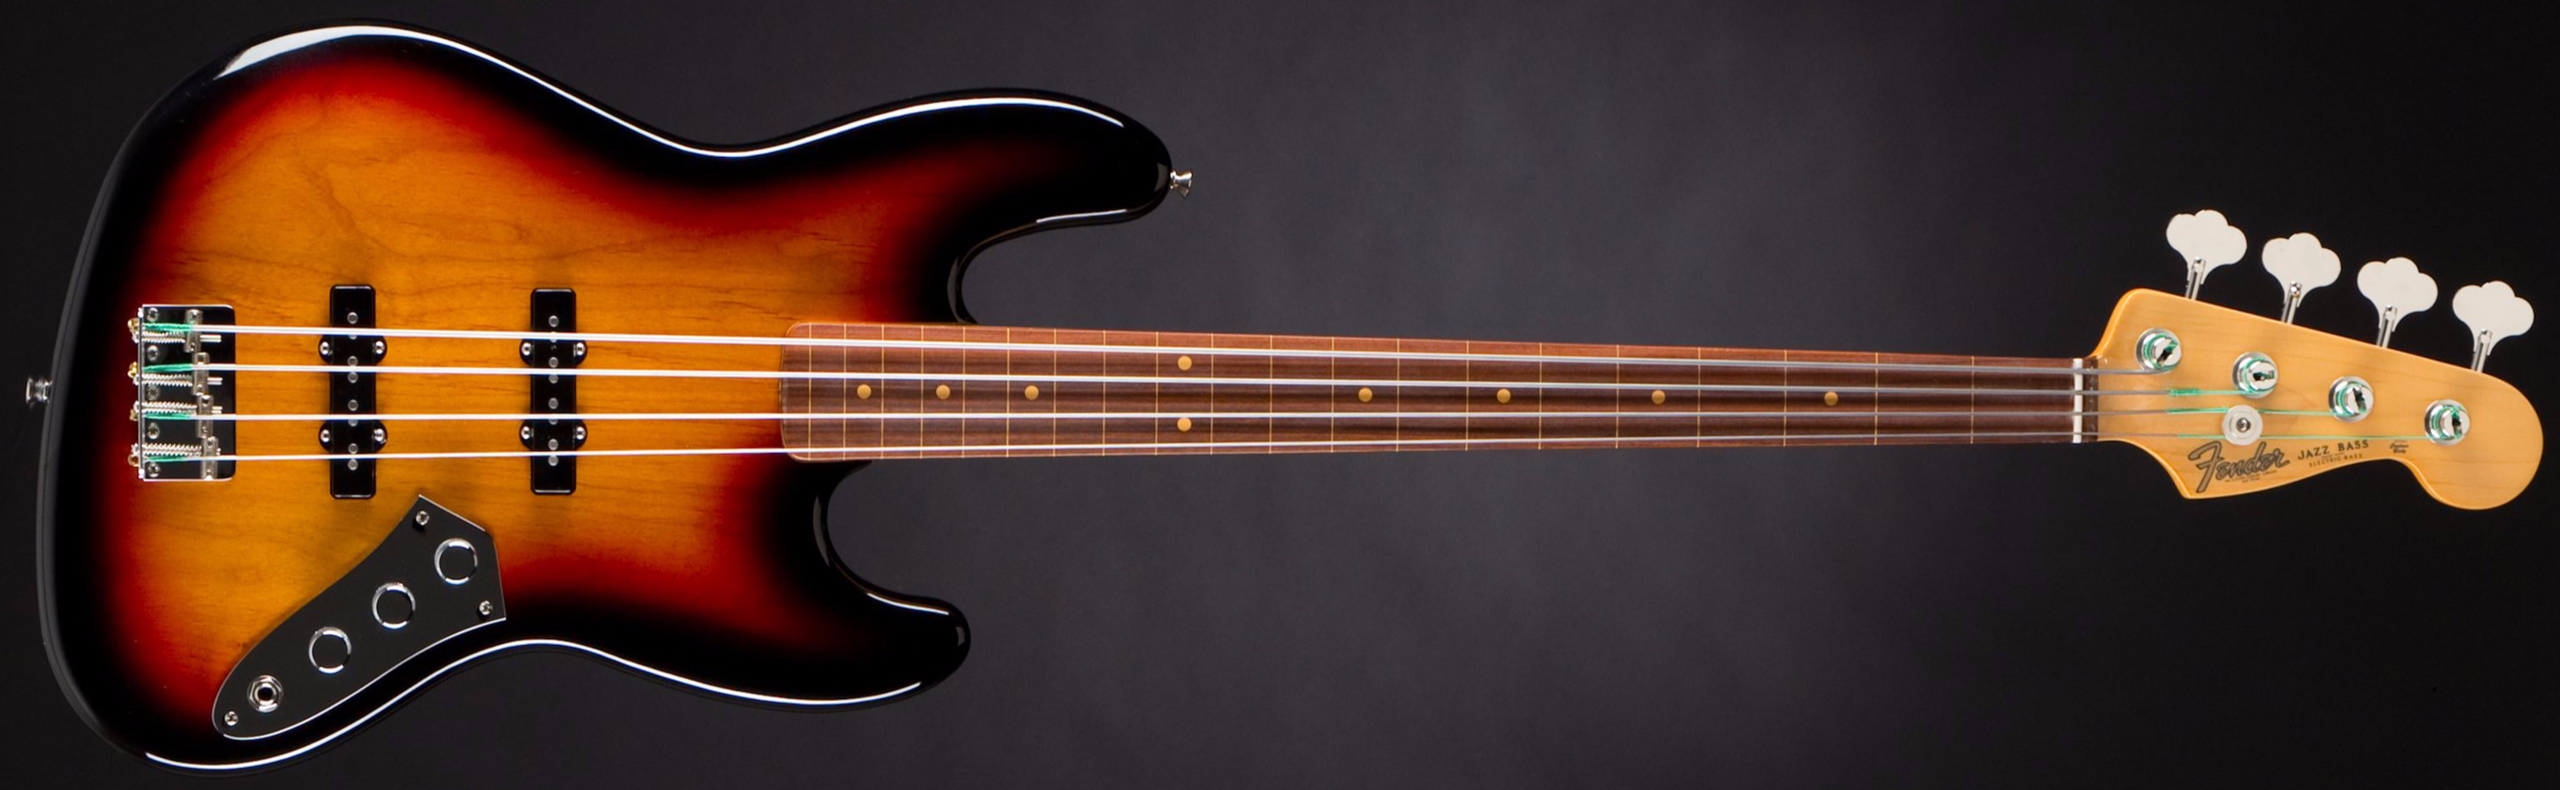 FENDER Jaco Pastorius Jazz Bass 3-Color Sunburst